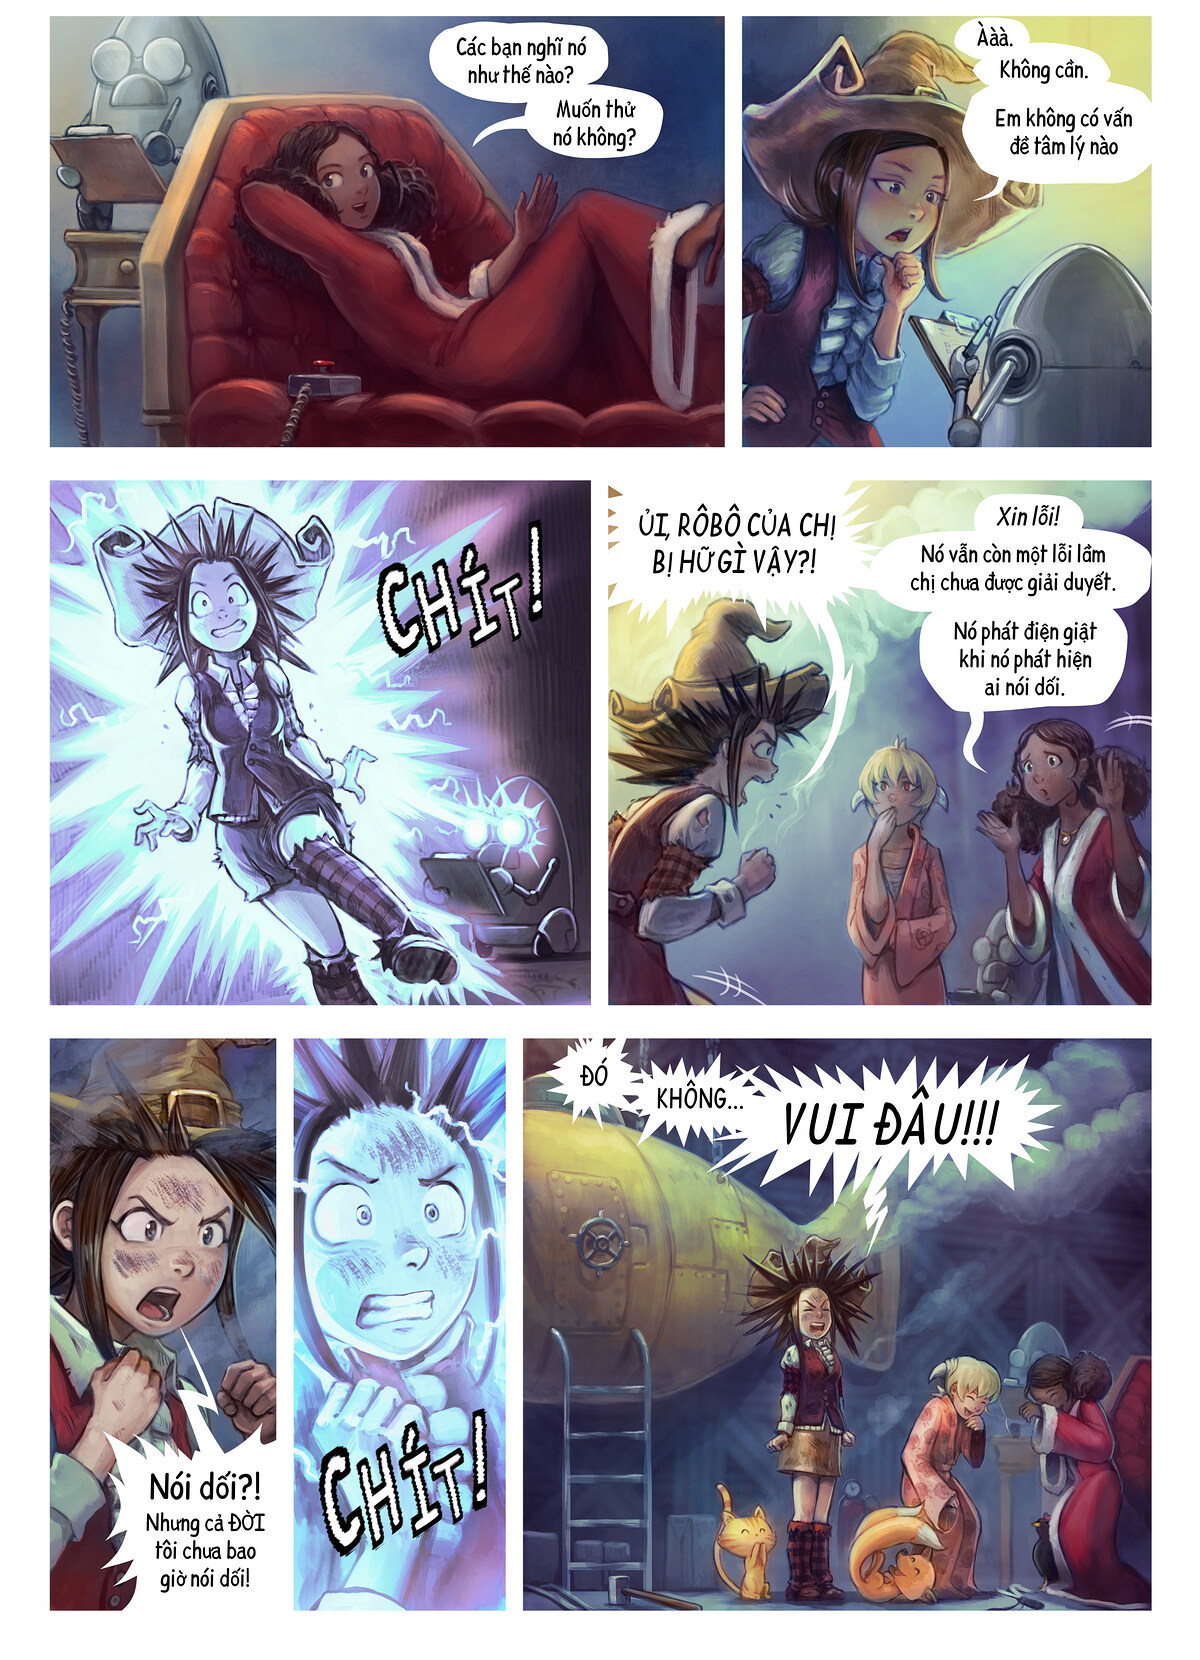 A webcomic page of Pepper&Carrot, Tập 27 [vi], trang 4